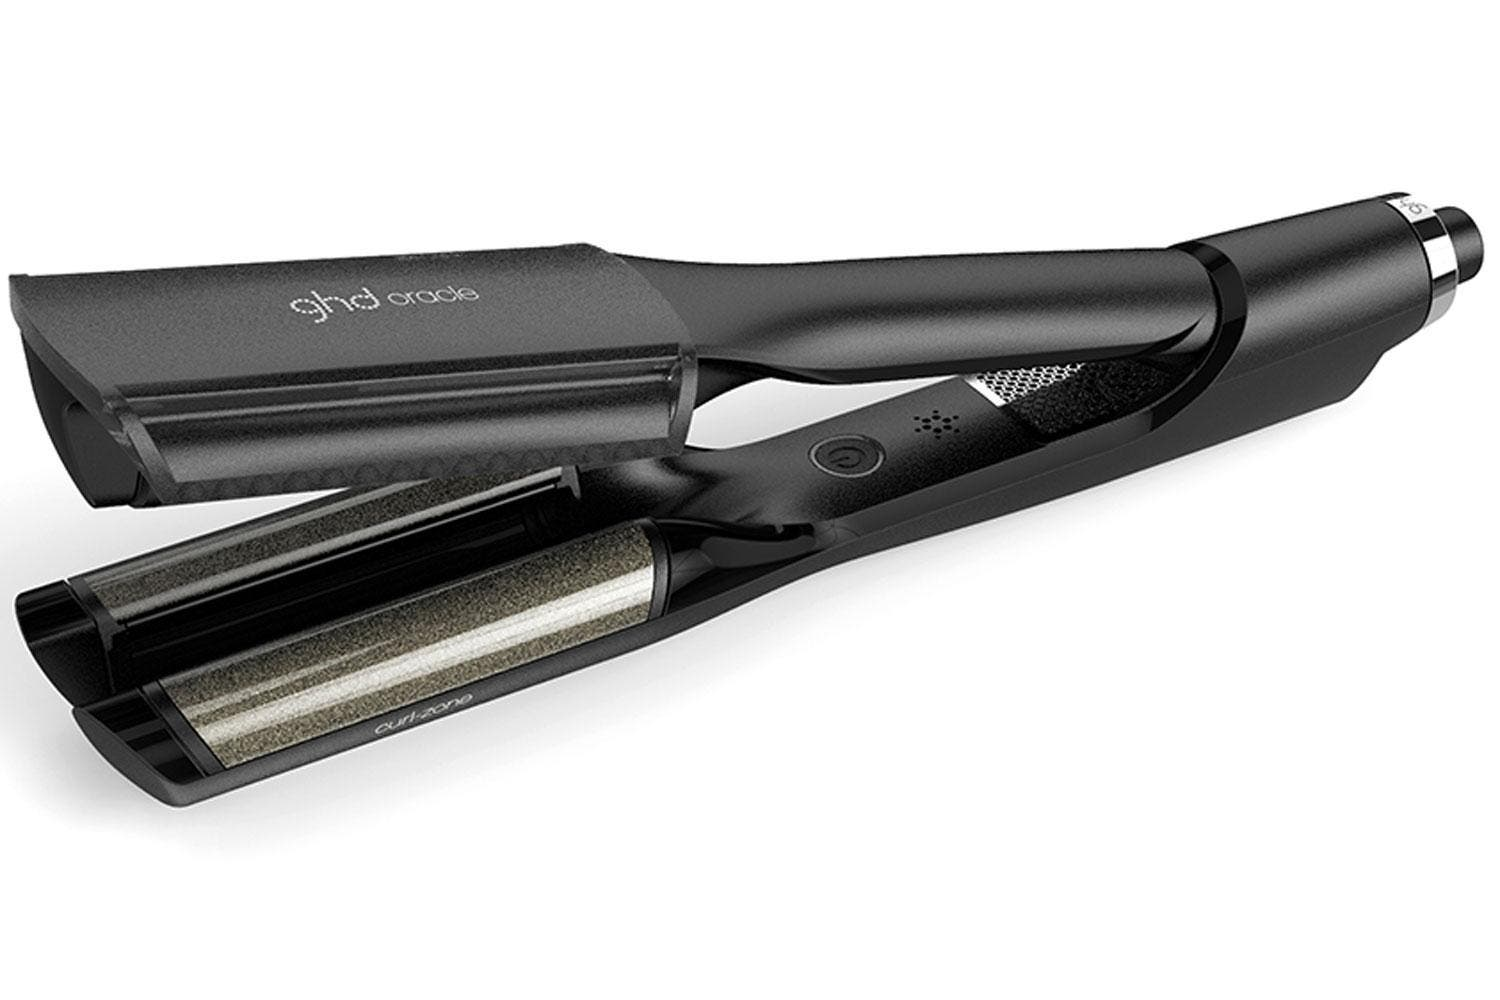 Ghd Oracle Professional Versatile Curler Gift Set - One Tool, Endless Curls